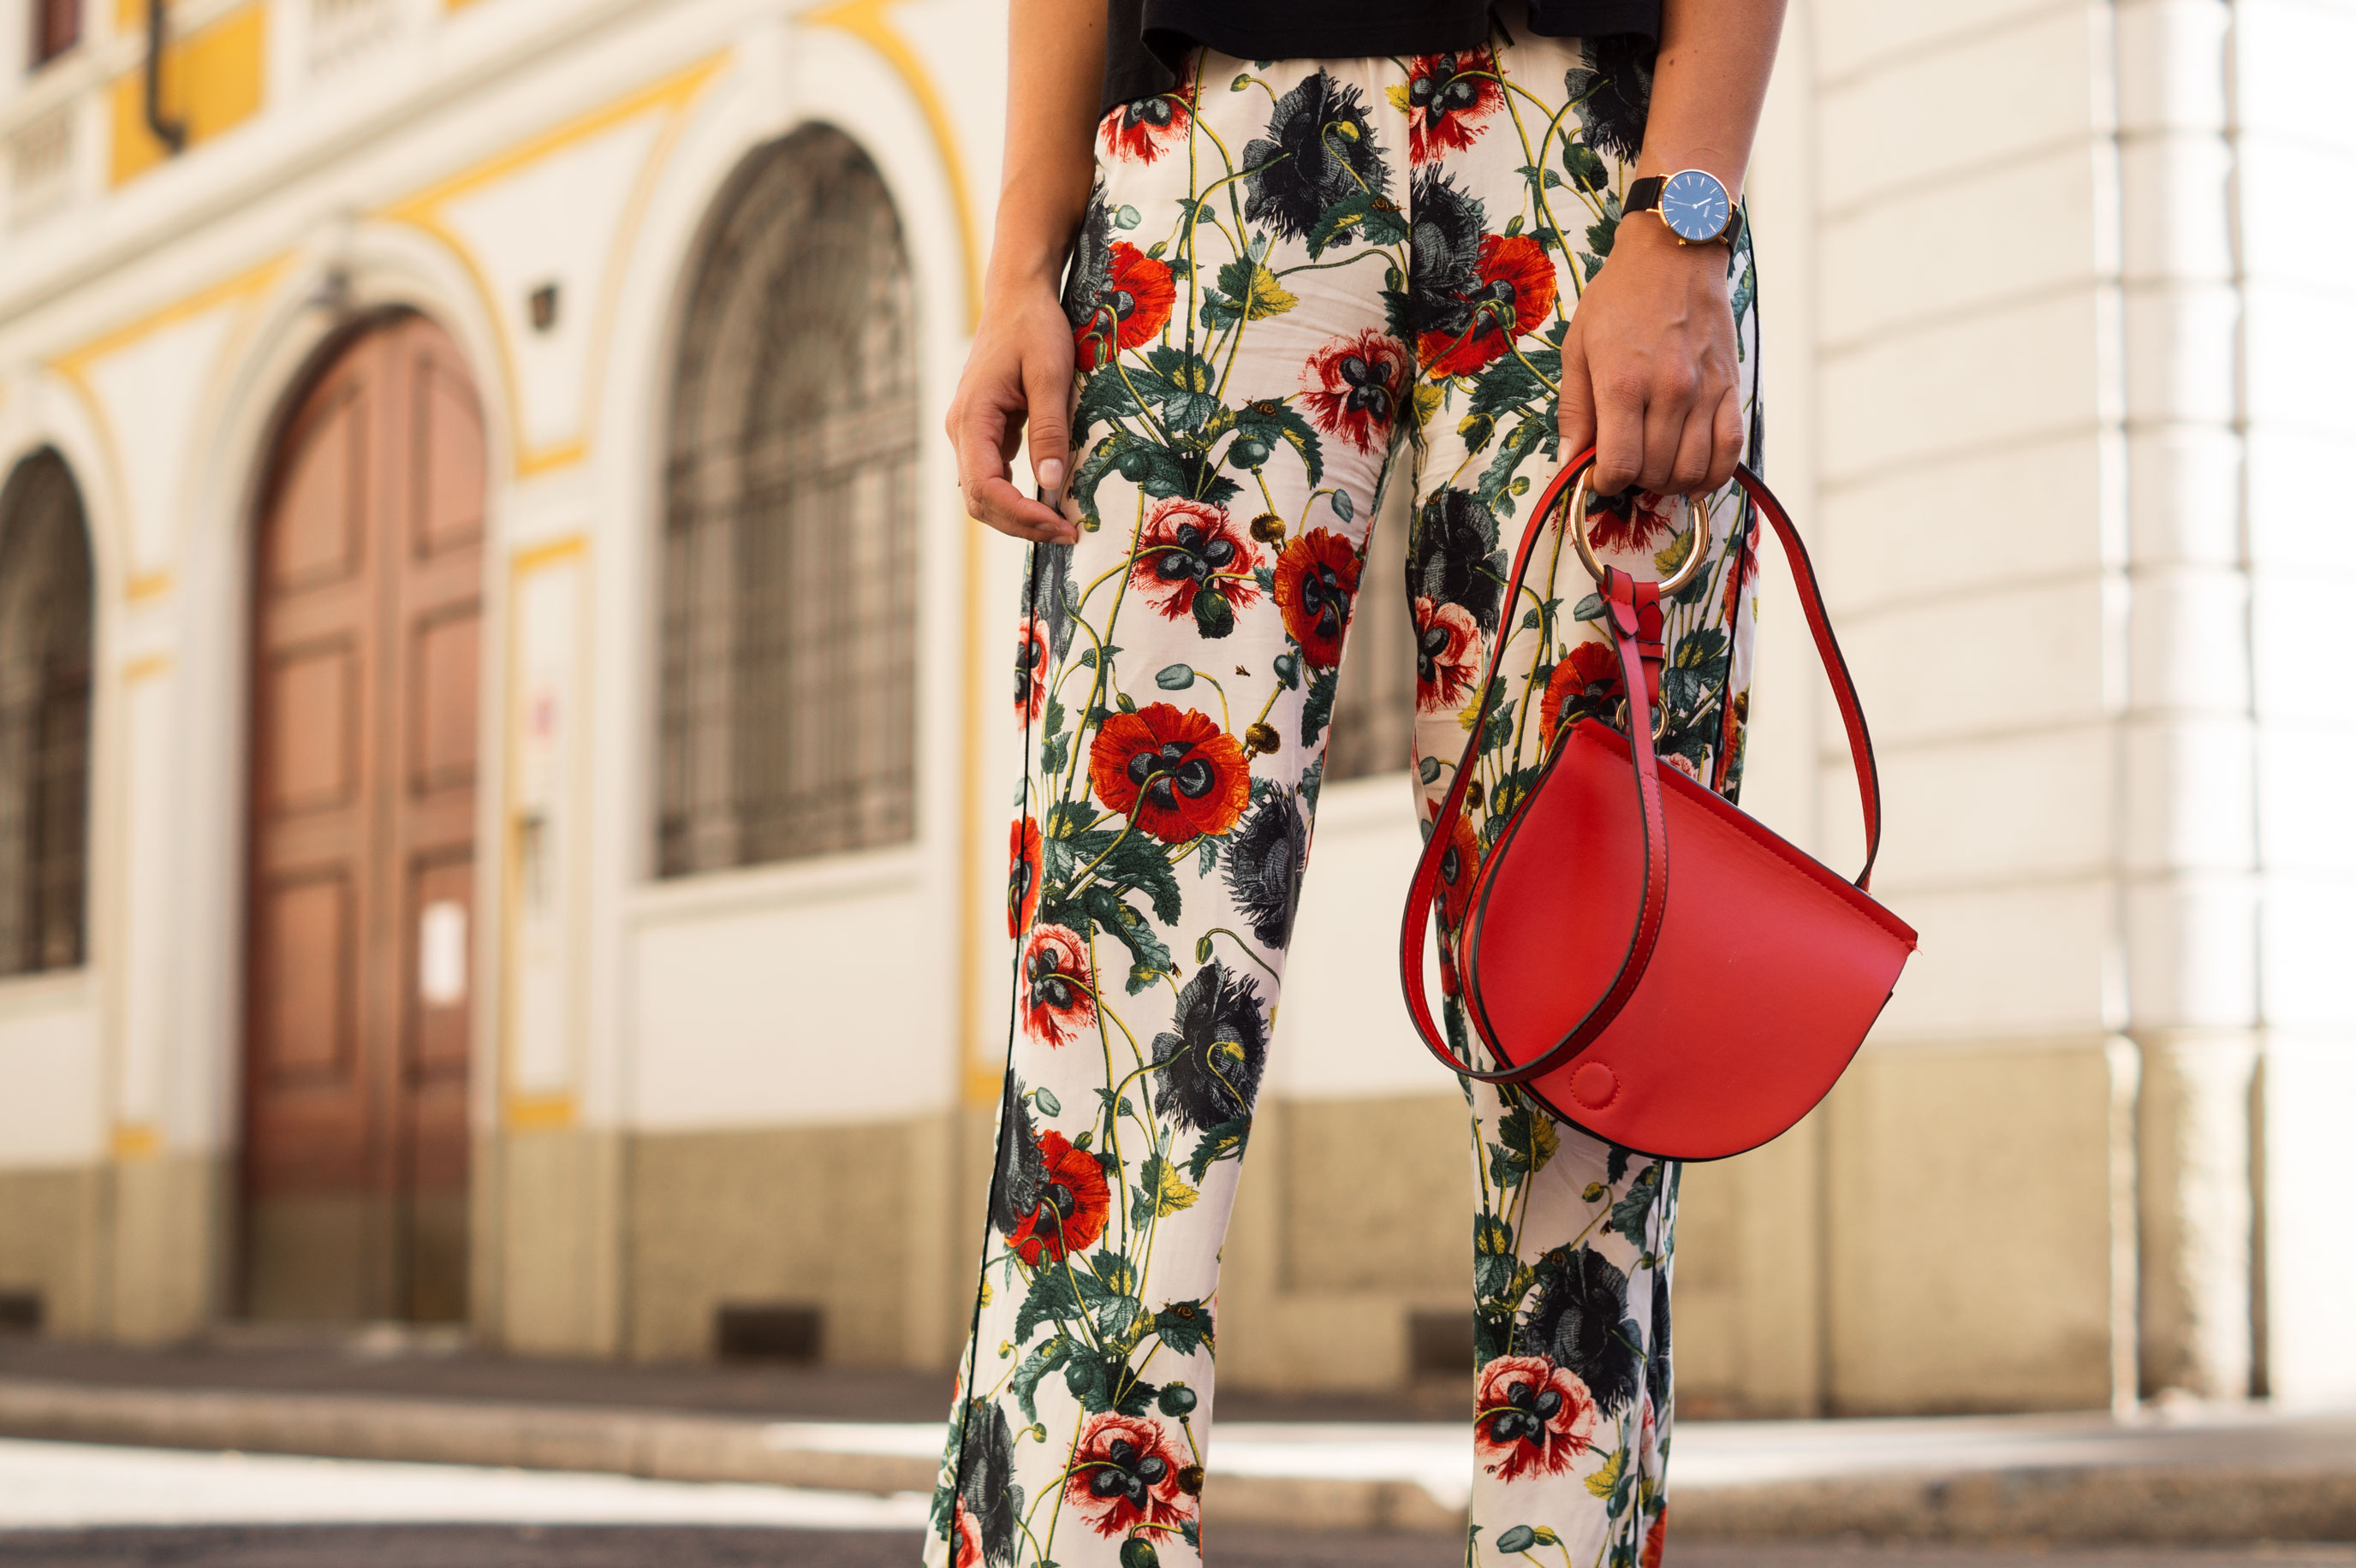 H&M Printhose Milan Sariety Fashionblogger Sommerlook Mailand rote Tasche Chanel Schuhe Dupes Summer Floral Print-9